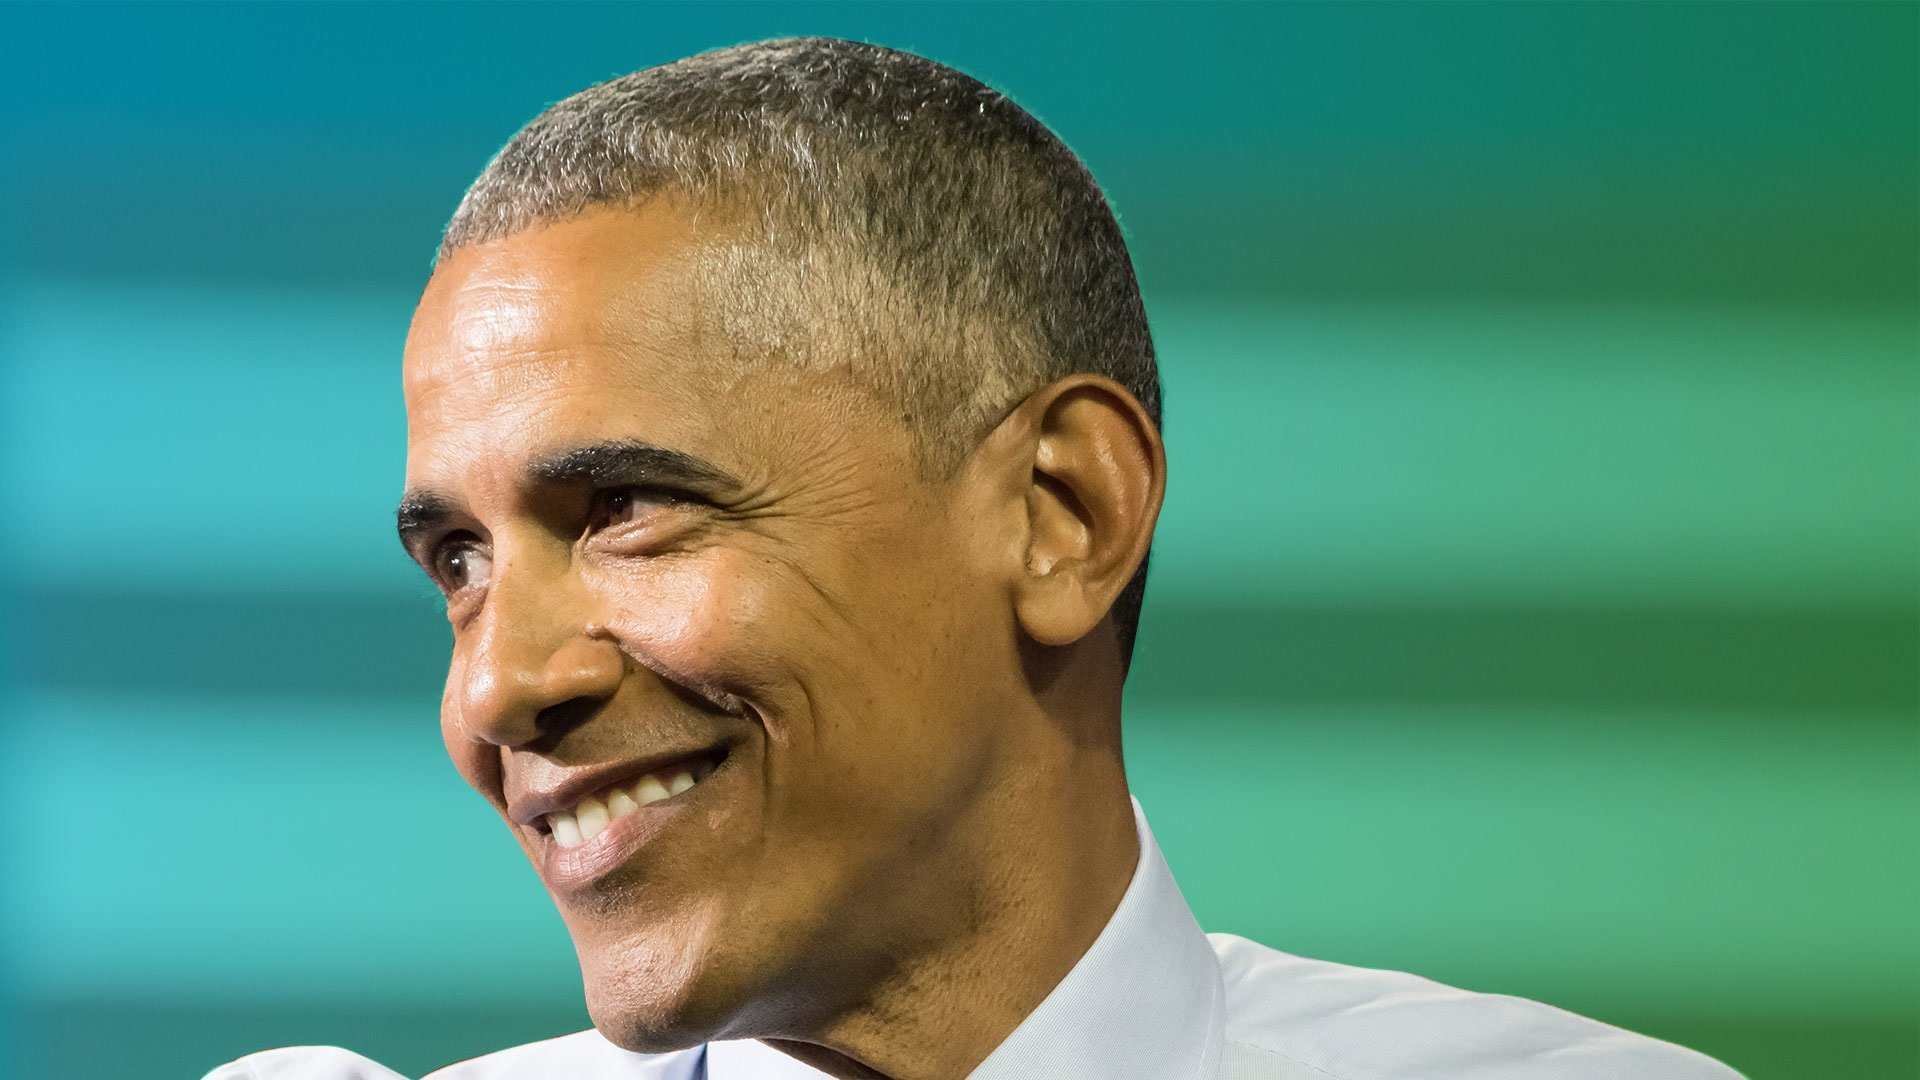 How Rich is Barack Obama as He Celebrates His 60th Birthday?